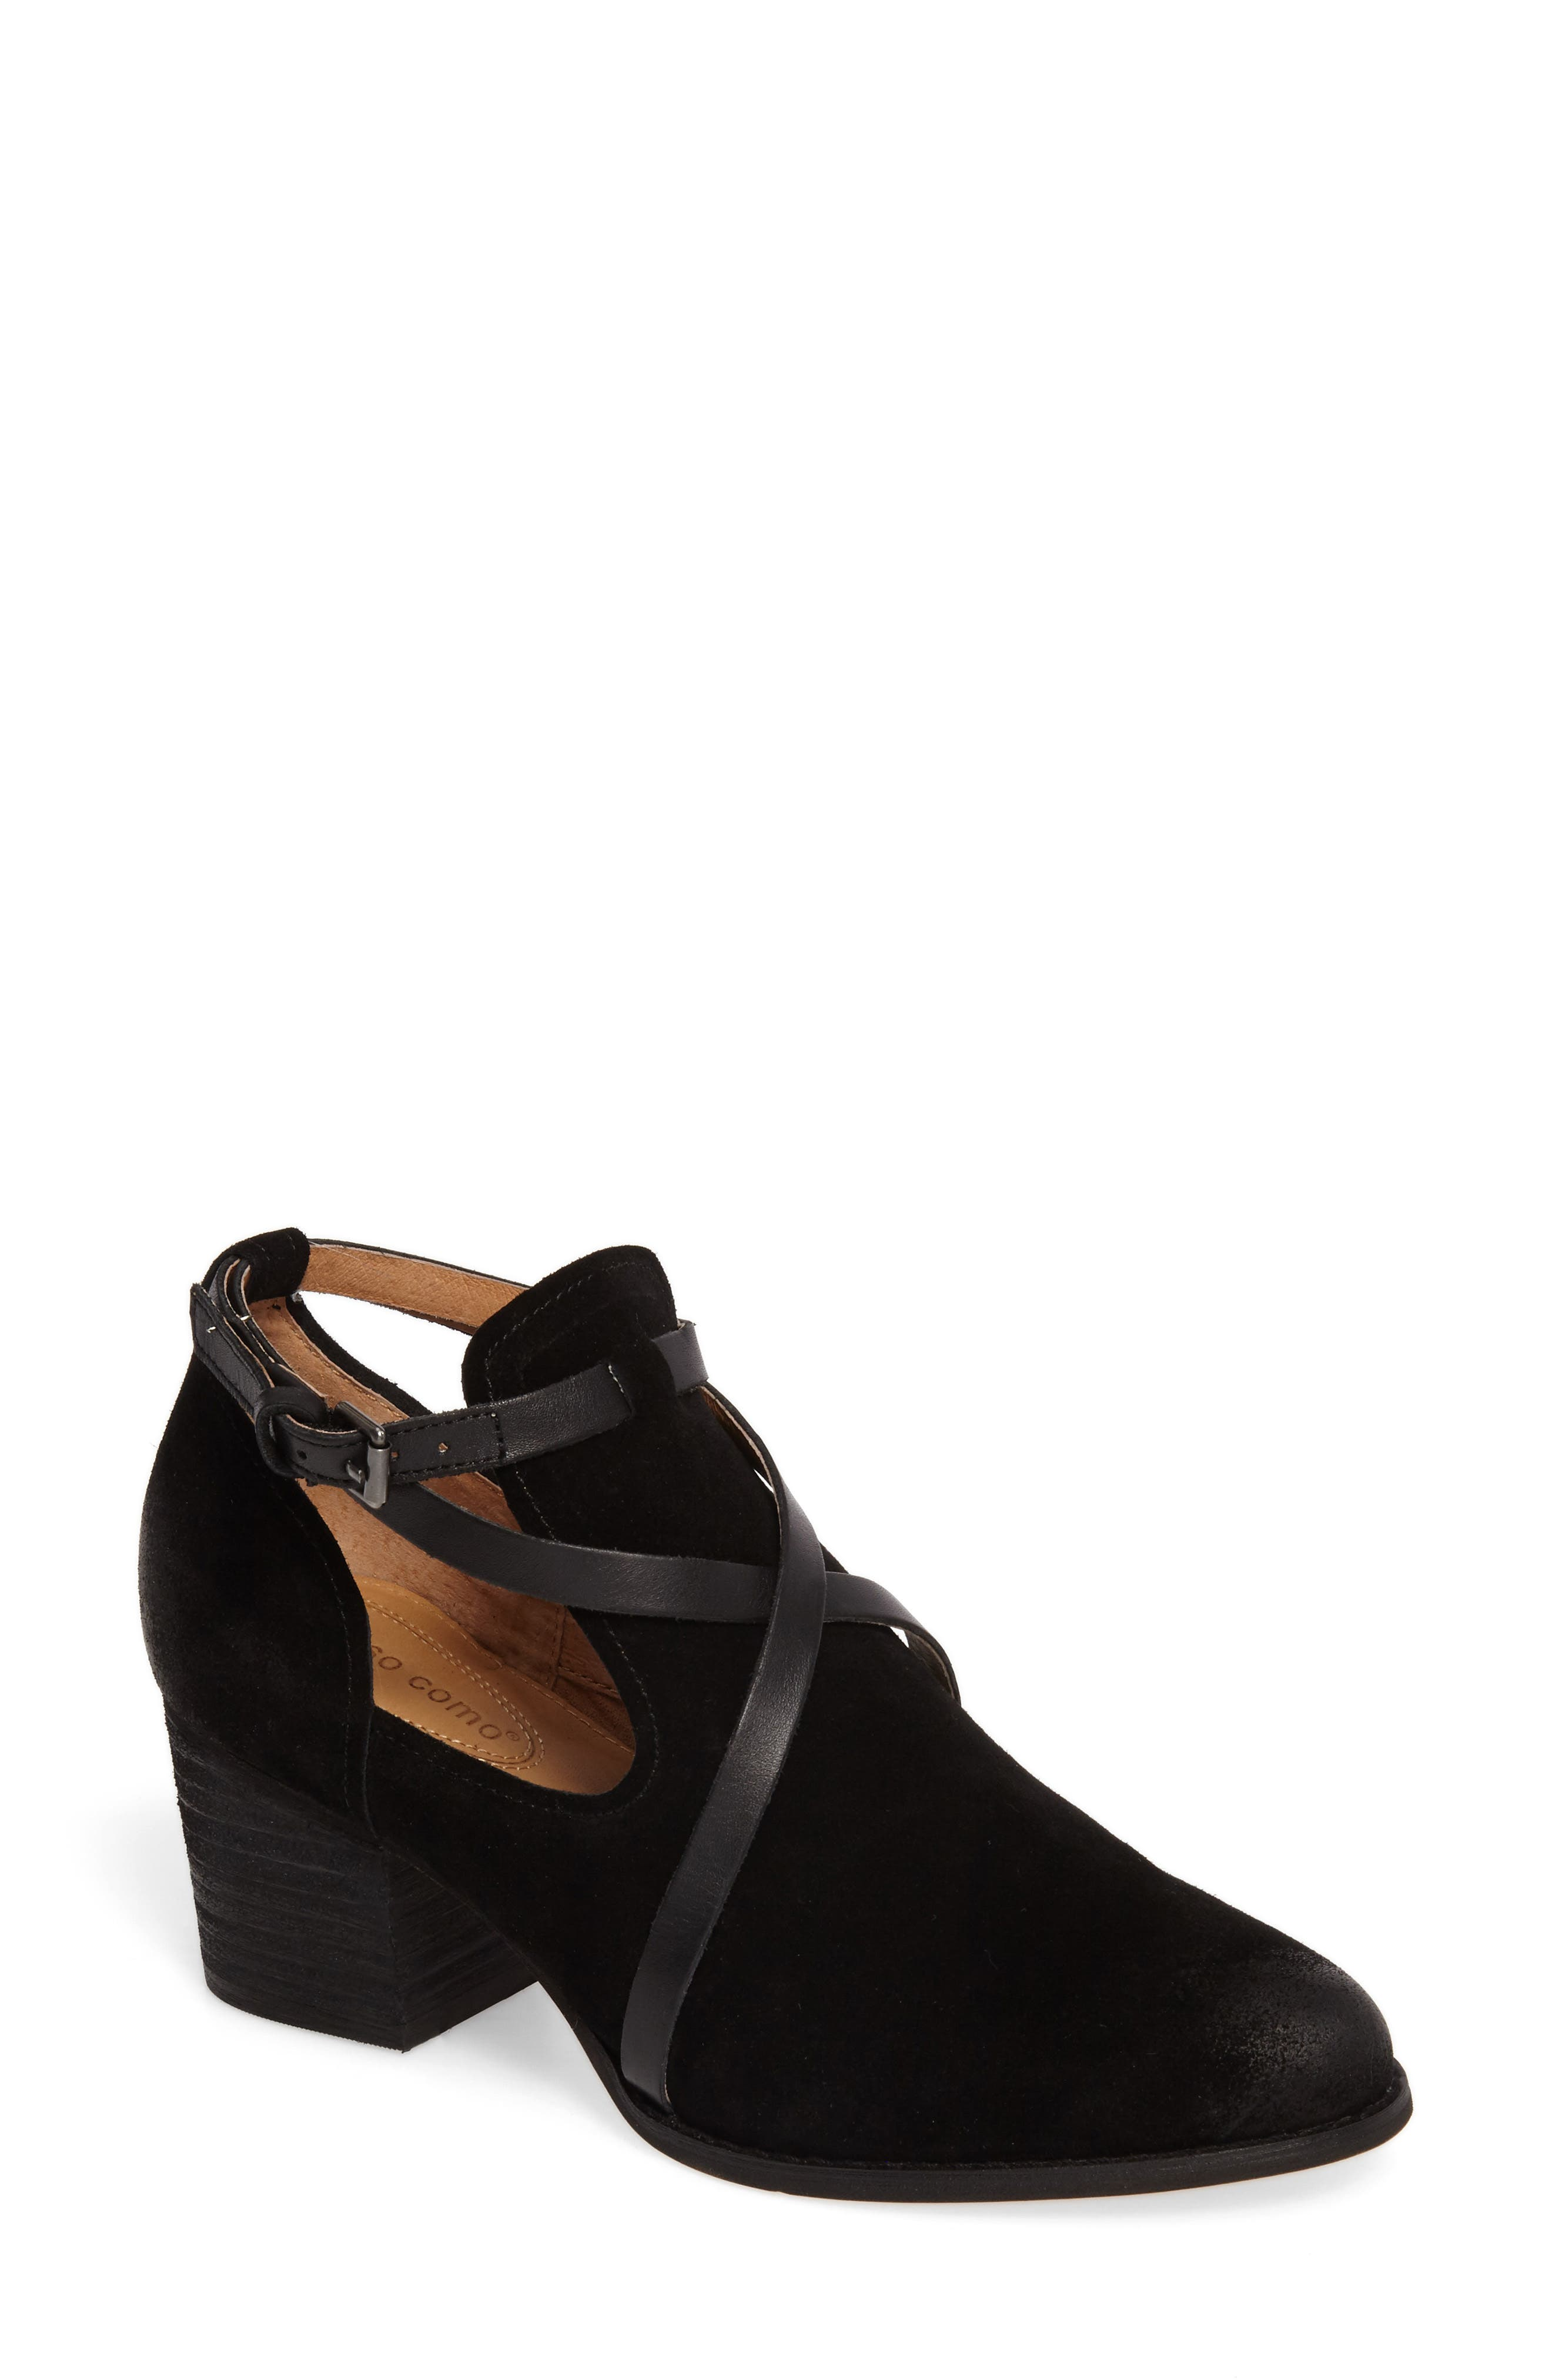 Hanna Bootie,                             Main thumbnail 1, color,                             Black Suede